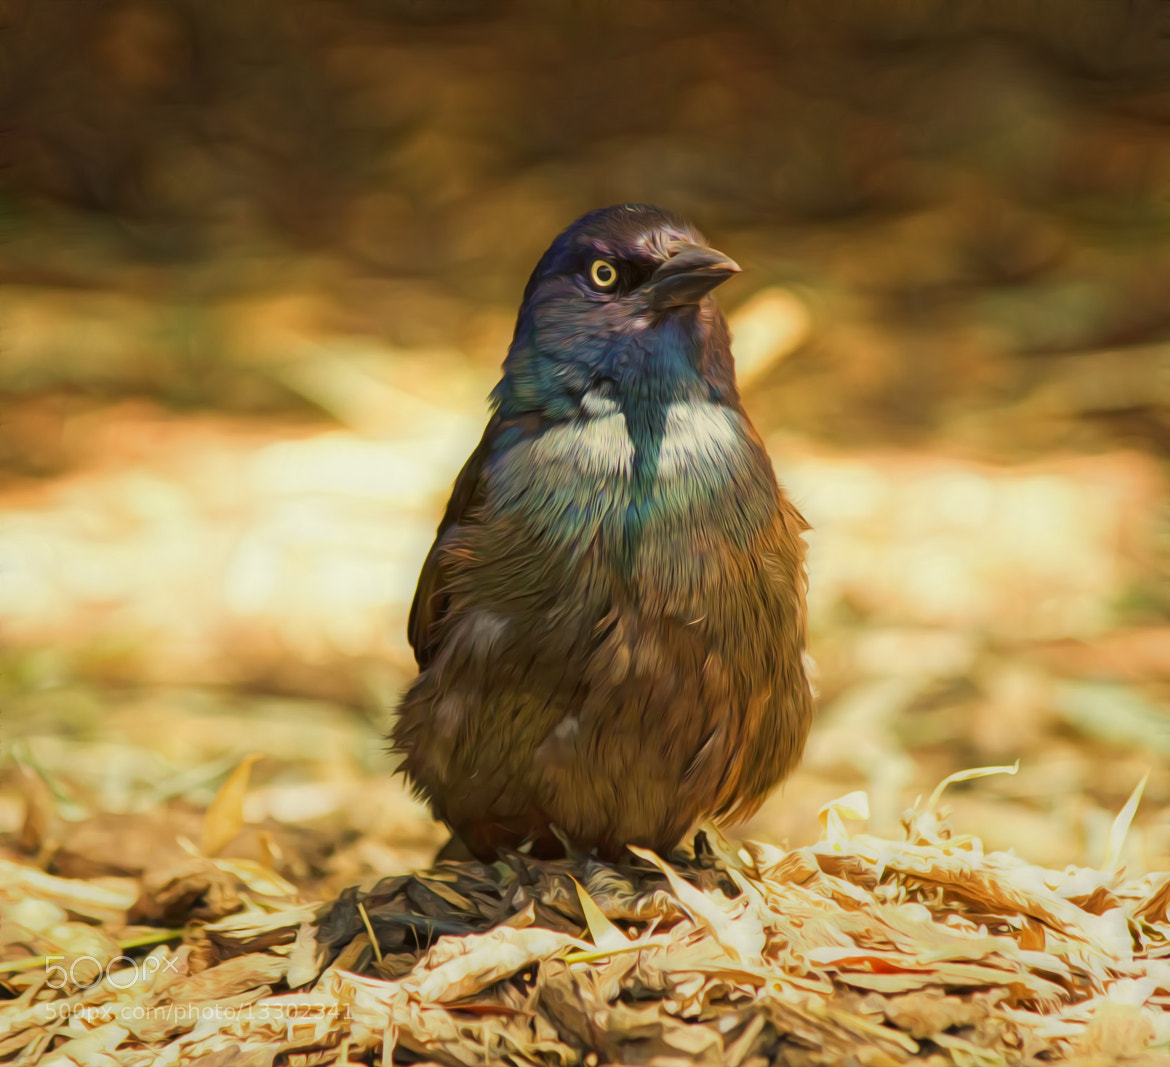 Photograph Grackle by Linda Tiepelman on 500px